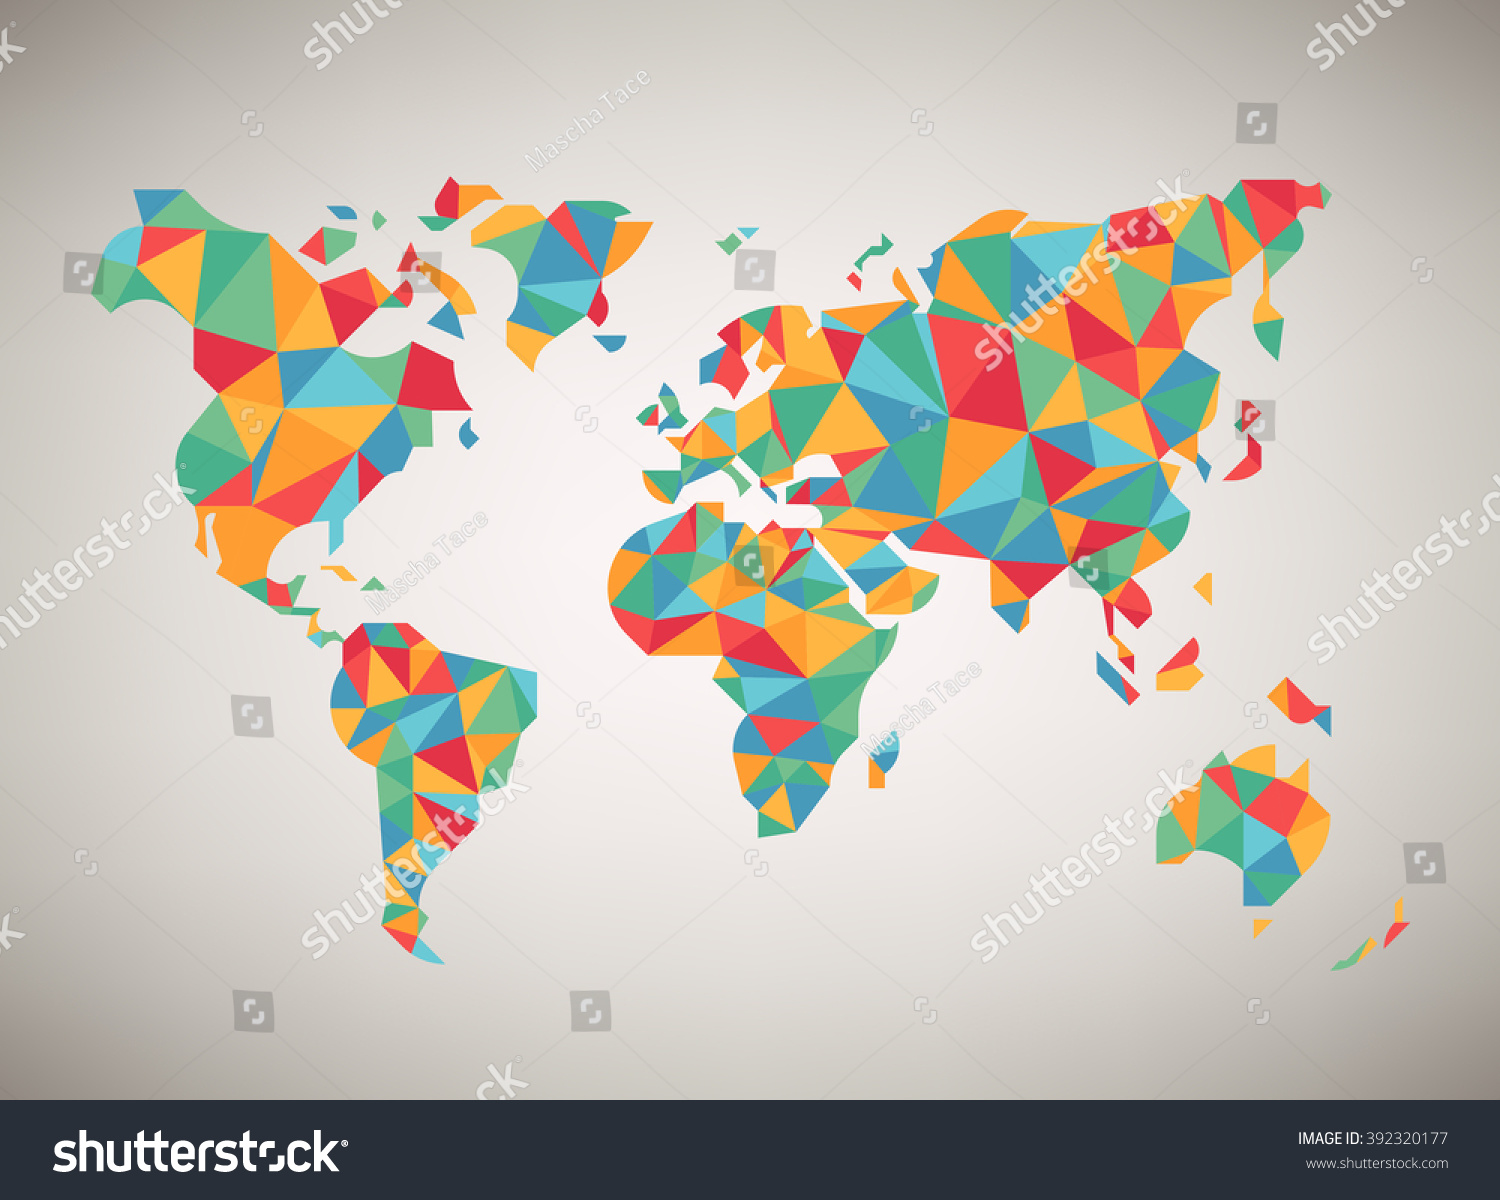 World map vector cool abstract colorful stock vector for Map designer free